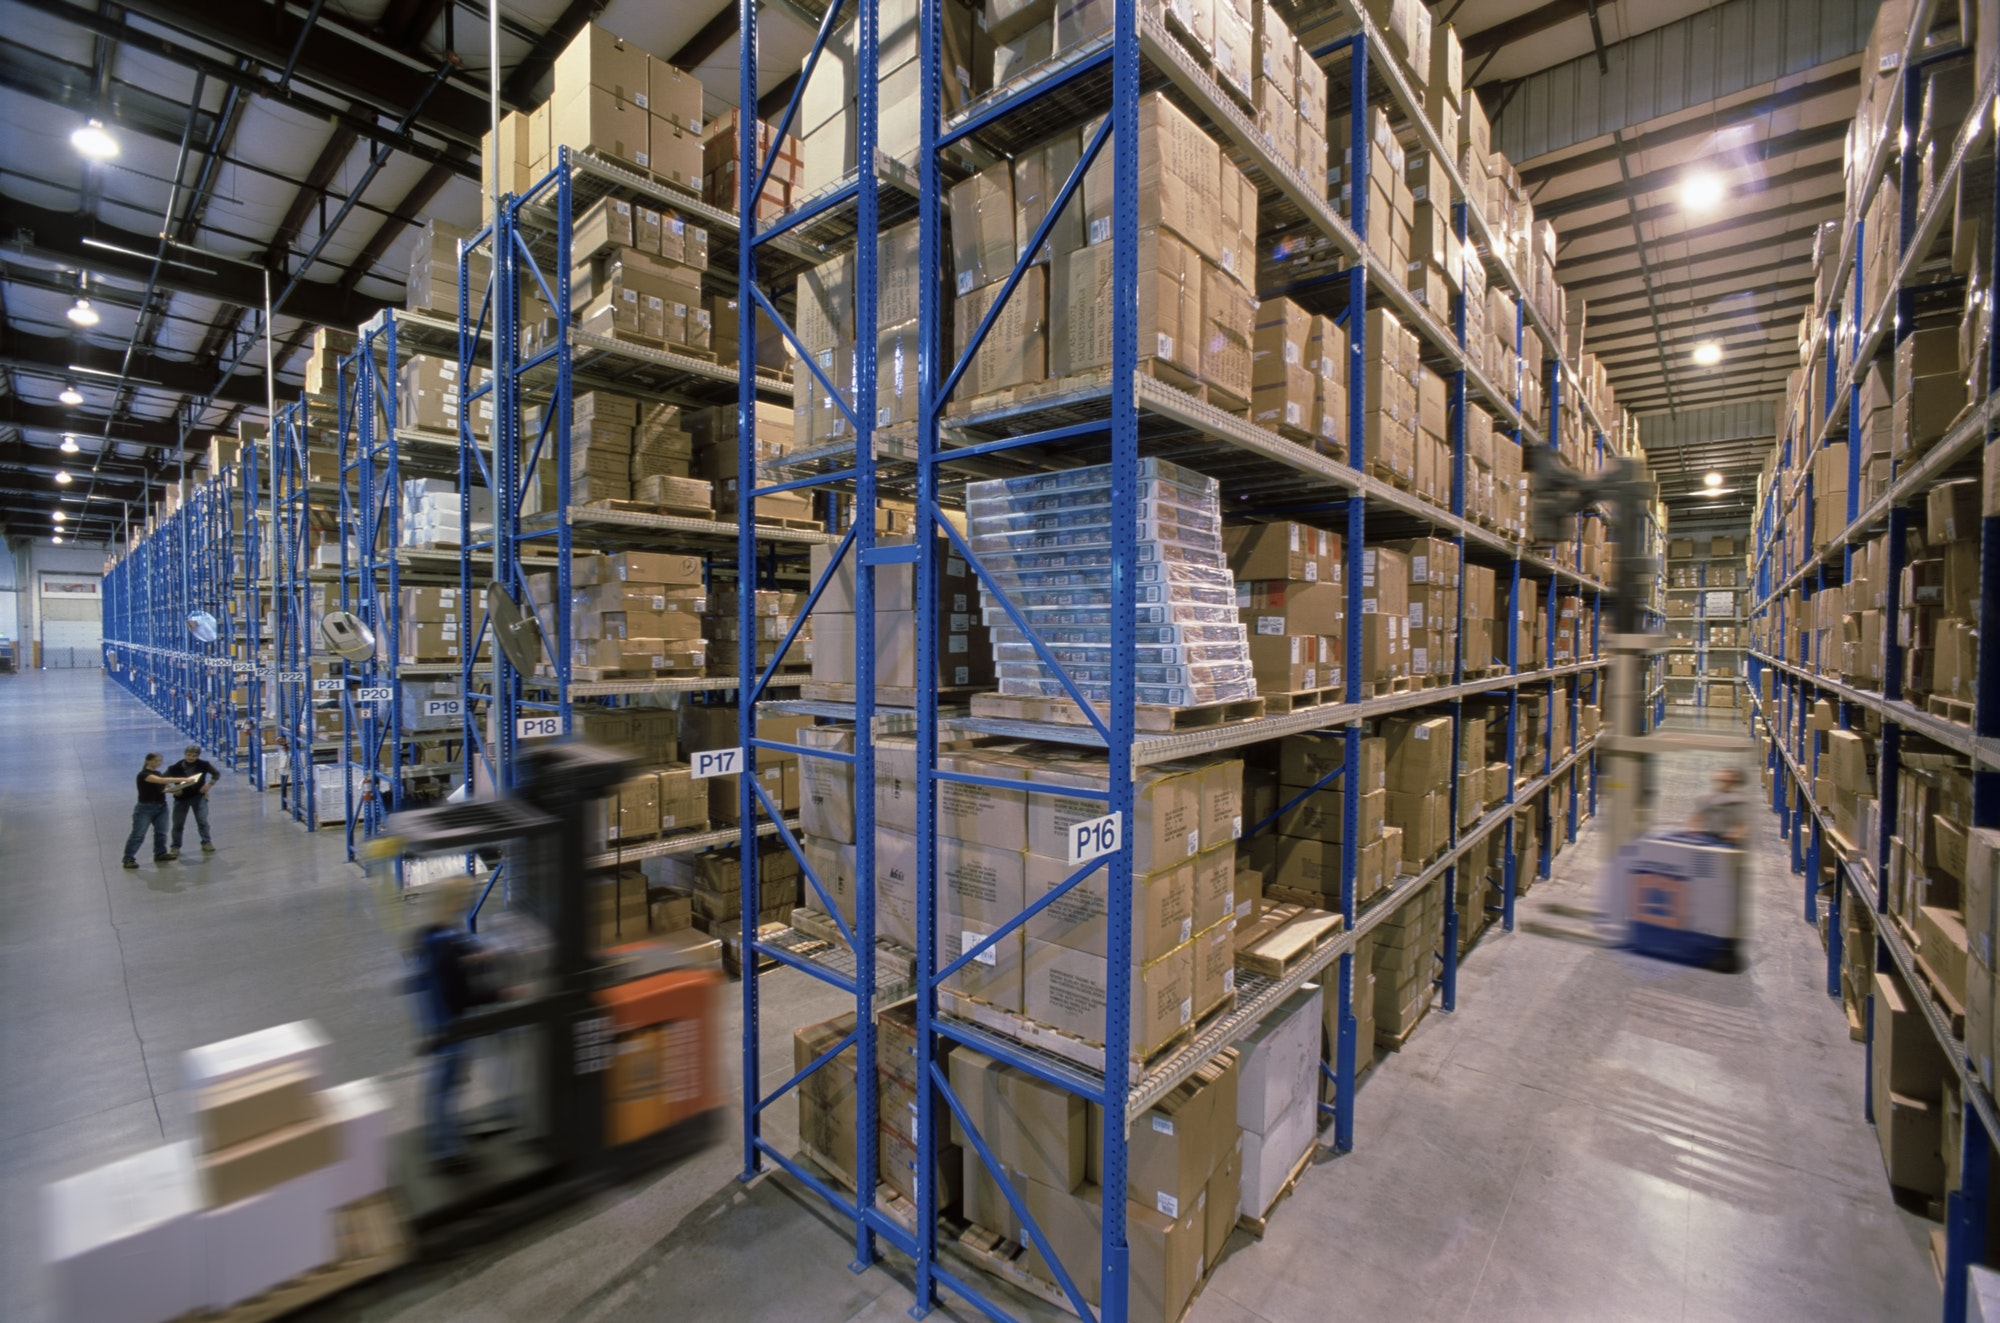 Overview of a large industrial distribution warehouse storing products in cardboard boxes on